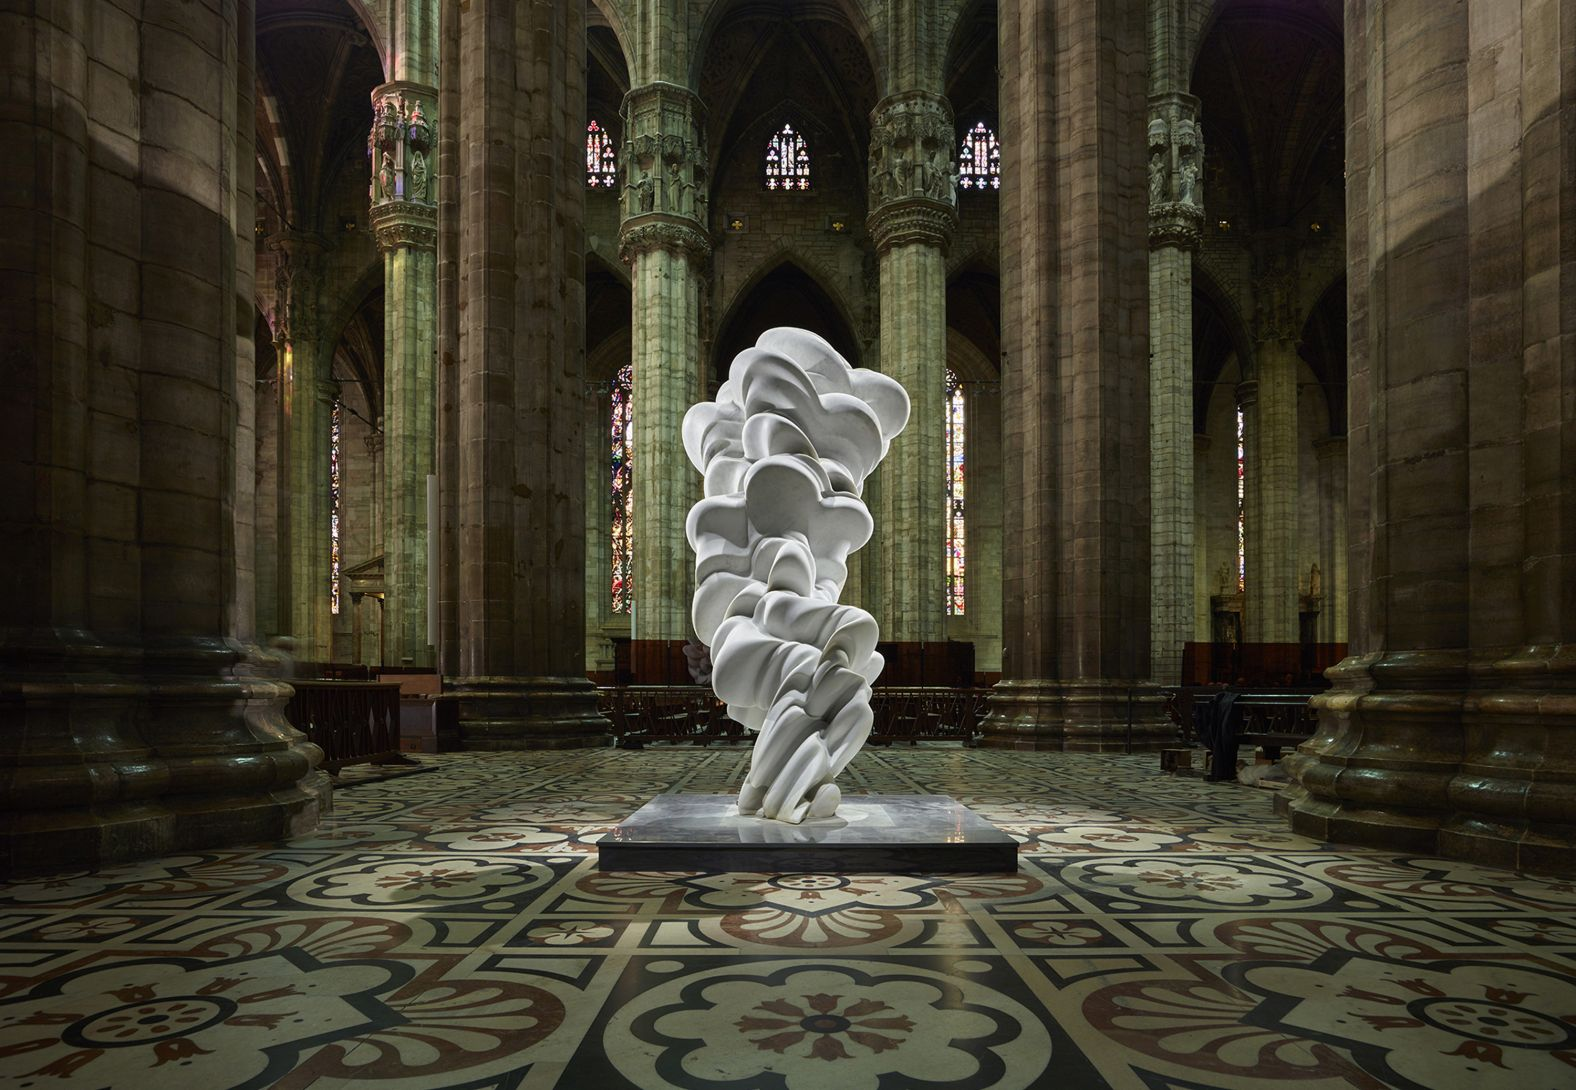 Tony Cragg, dialogue with the Duomo